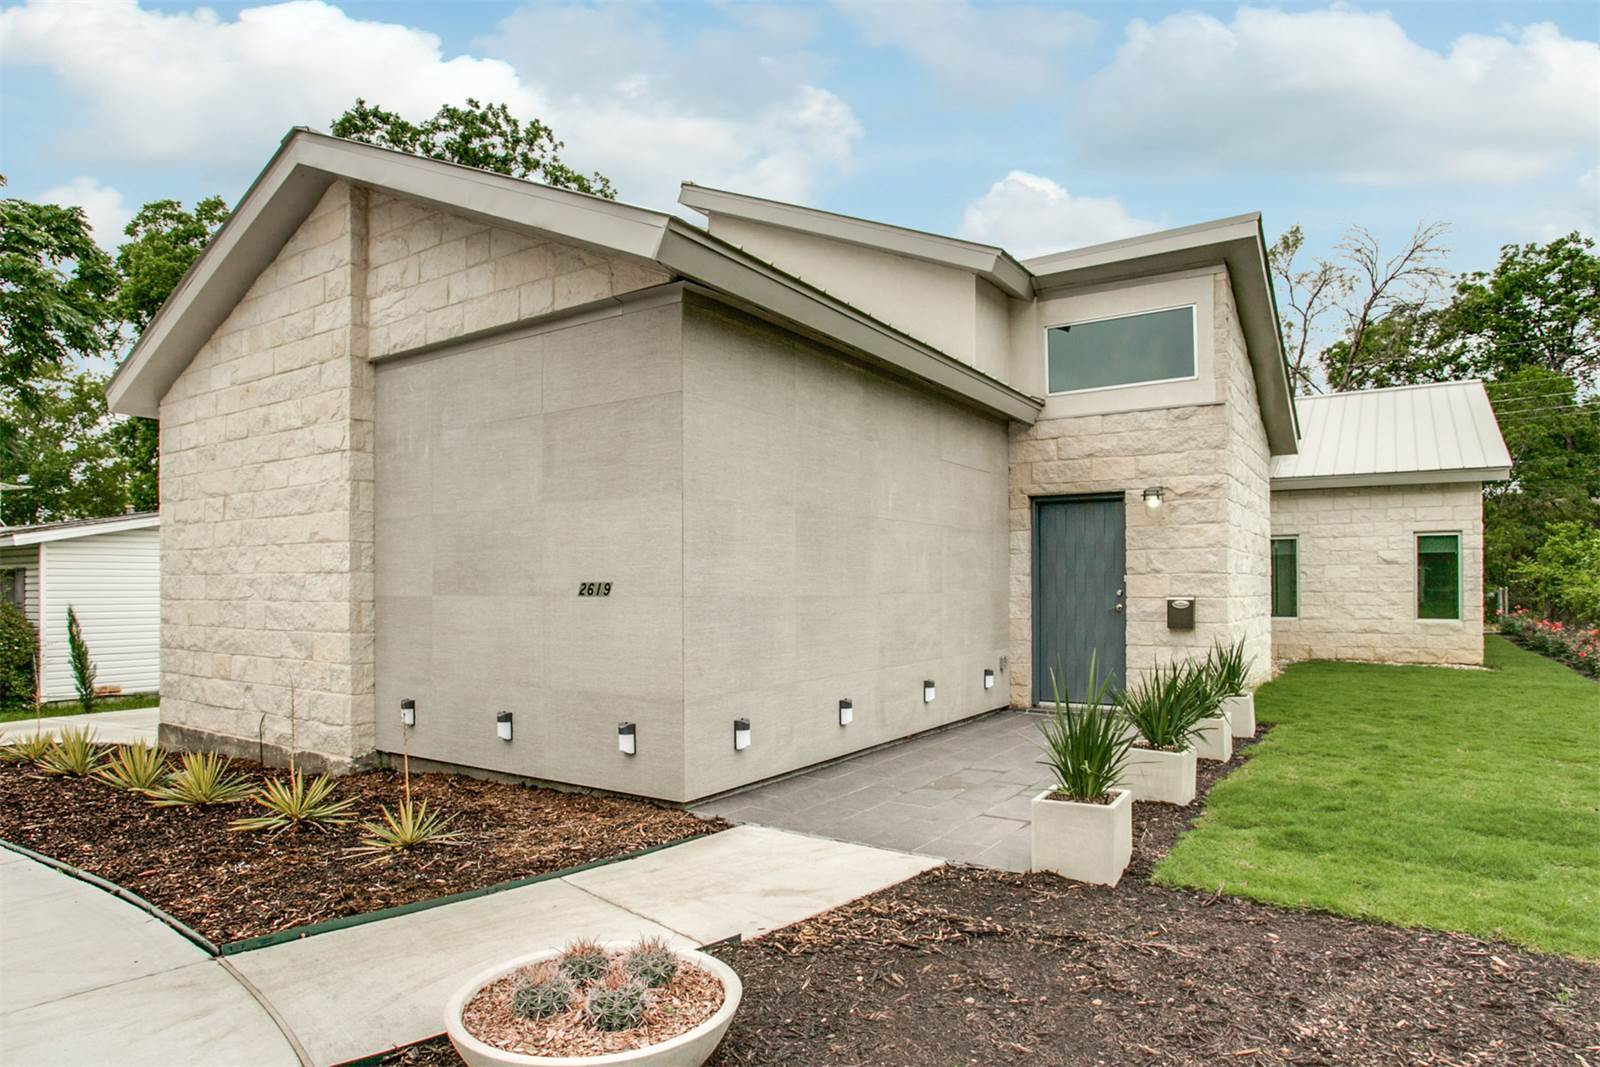 Contemporary home with stone and tile facade.